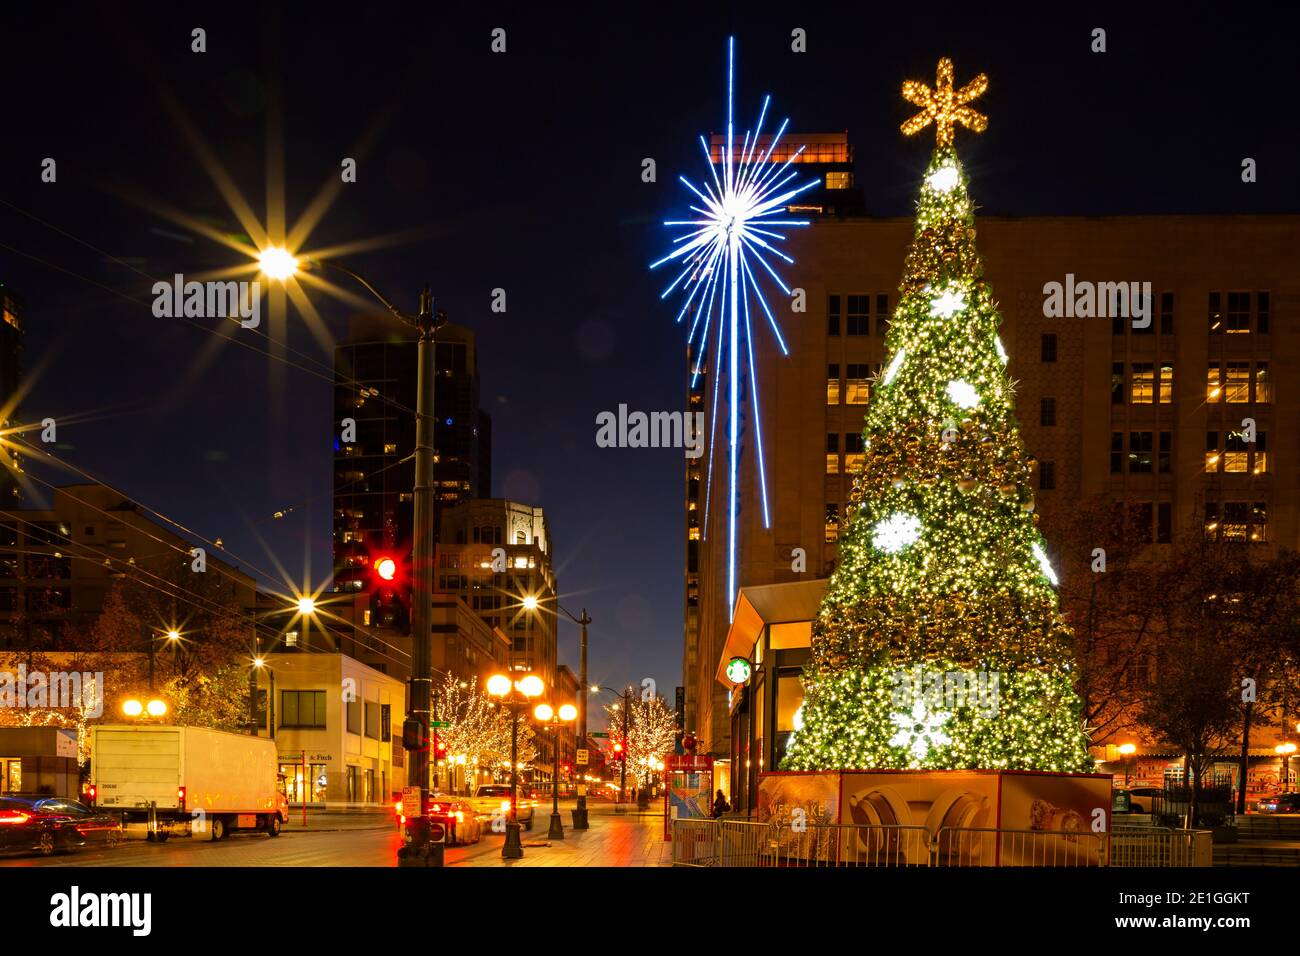 Westlake Center Christmas 2021 Wa19039 00 Washington The Westlake Center Tree And The Seattle Star Located Across The Street From The Westlake Park In Downtown Seattle Stock Photo Alamy